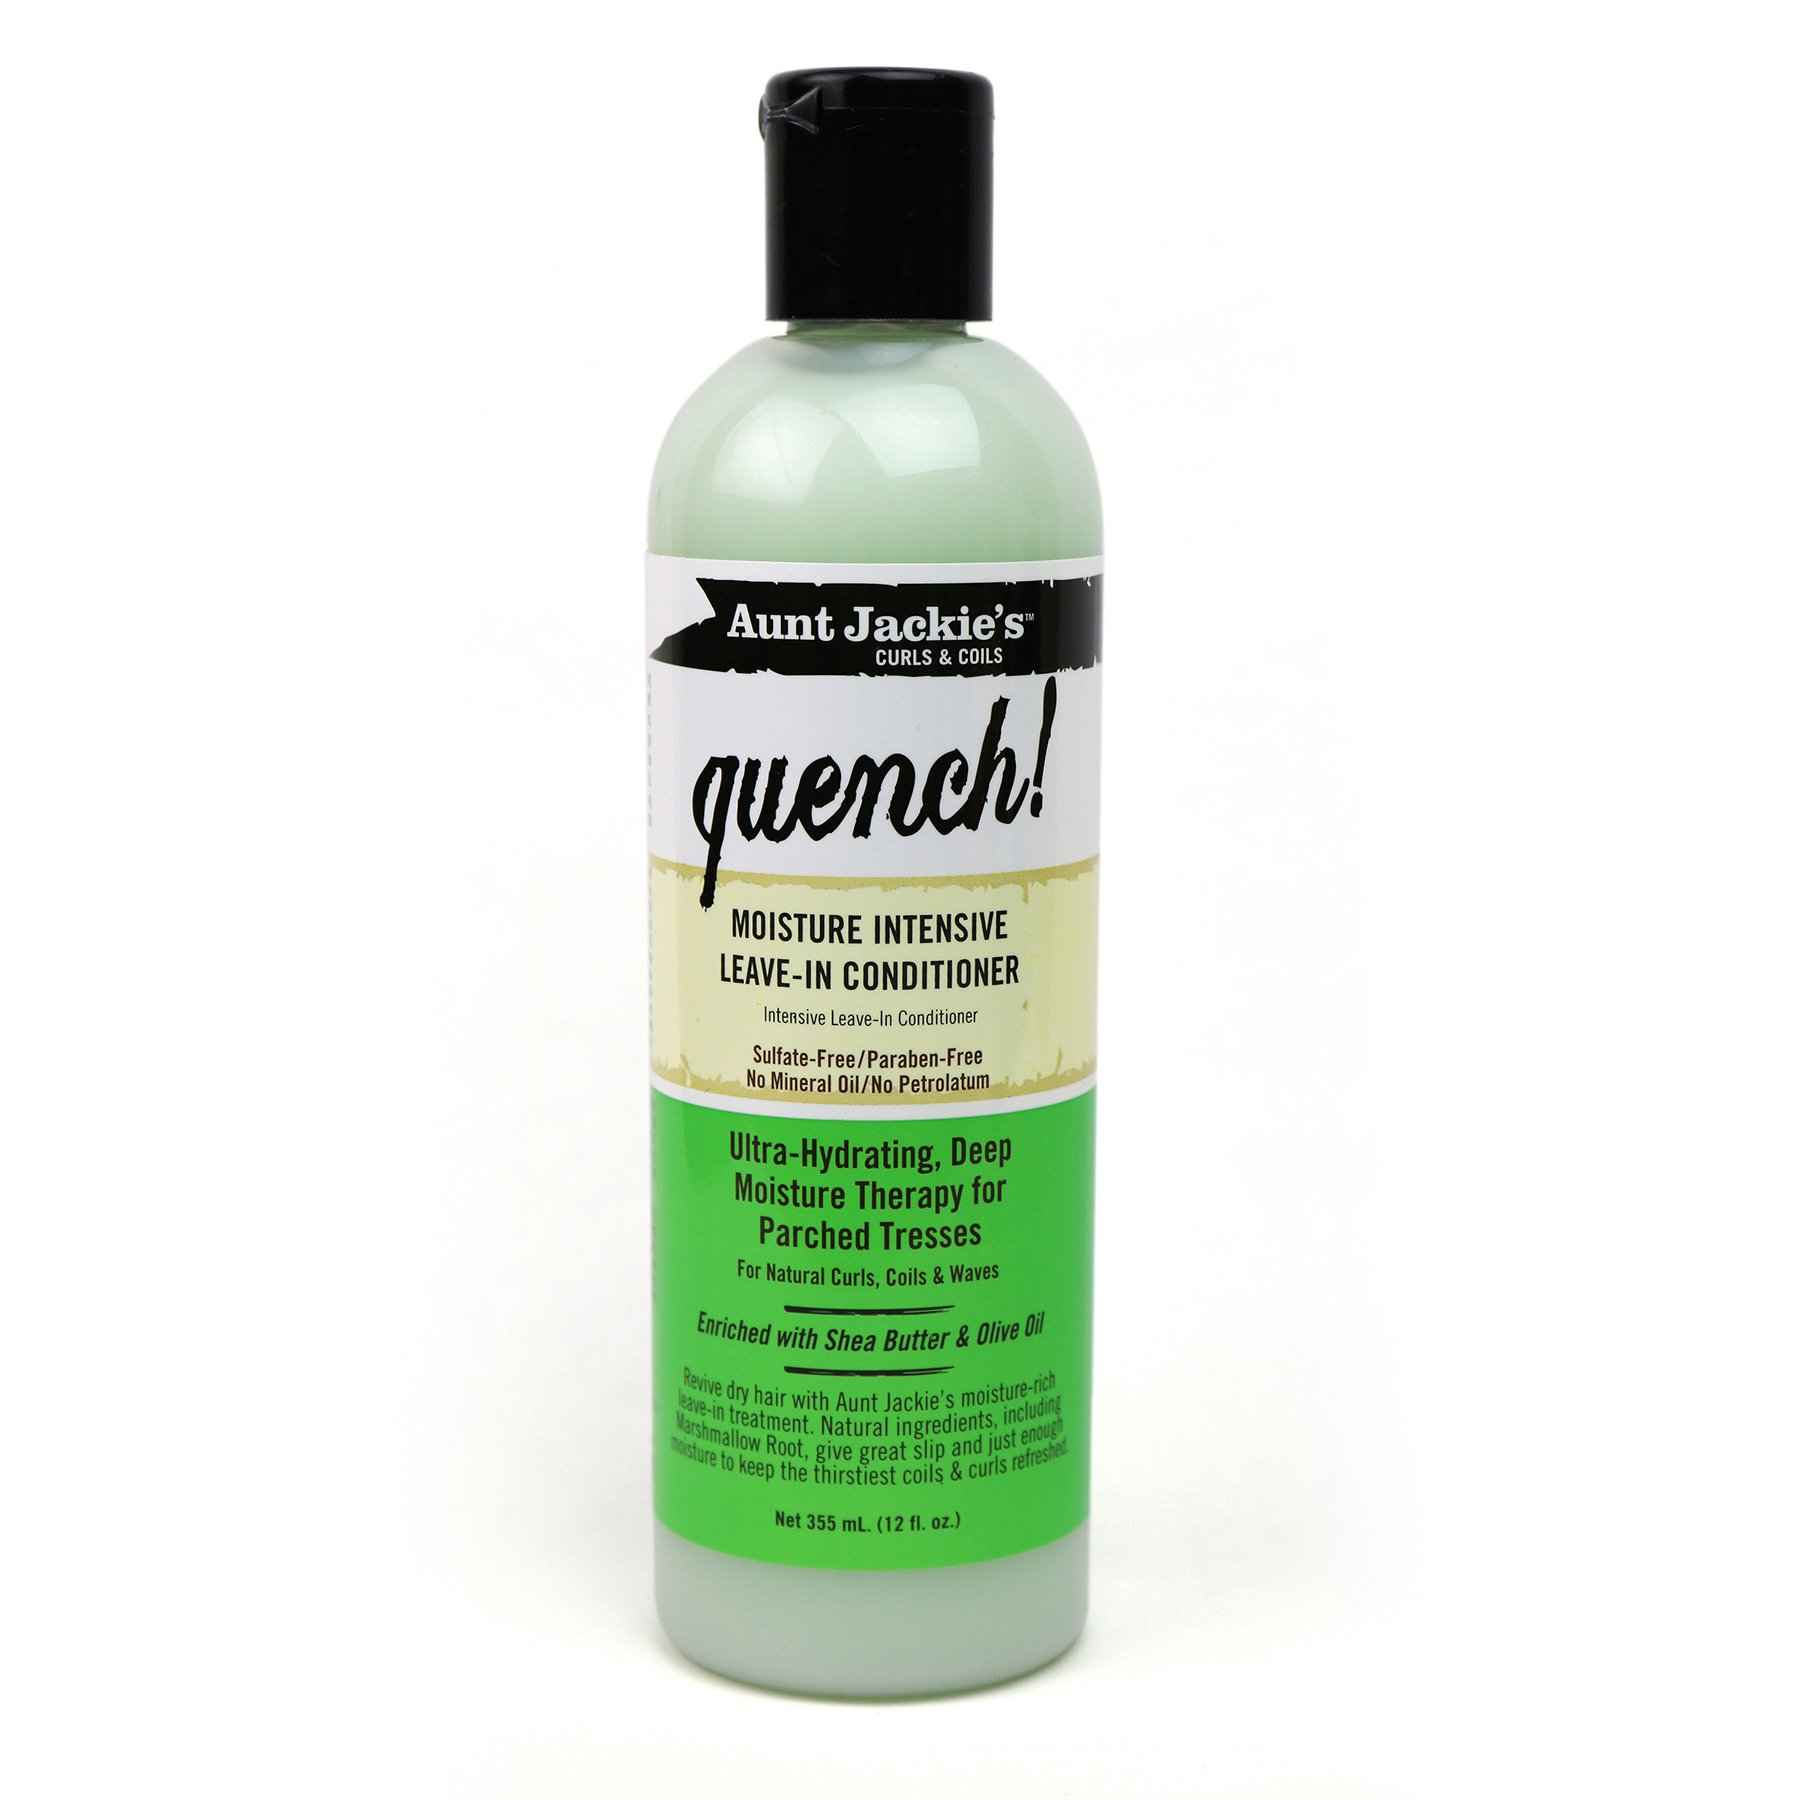 Aunt Jackie's - Aunt Jackie's Quench, Moisture Intensive Leave-in Conditioner, Ultra-Hydrating, Deep Moisture Therapy for Parched Hair, 12 Ounce Bottle